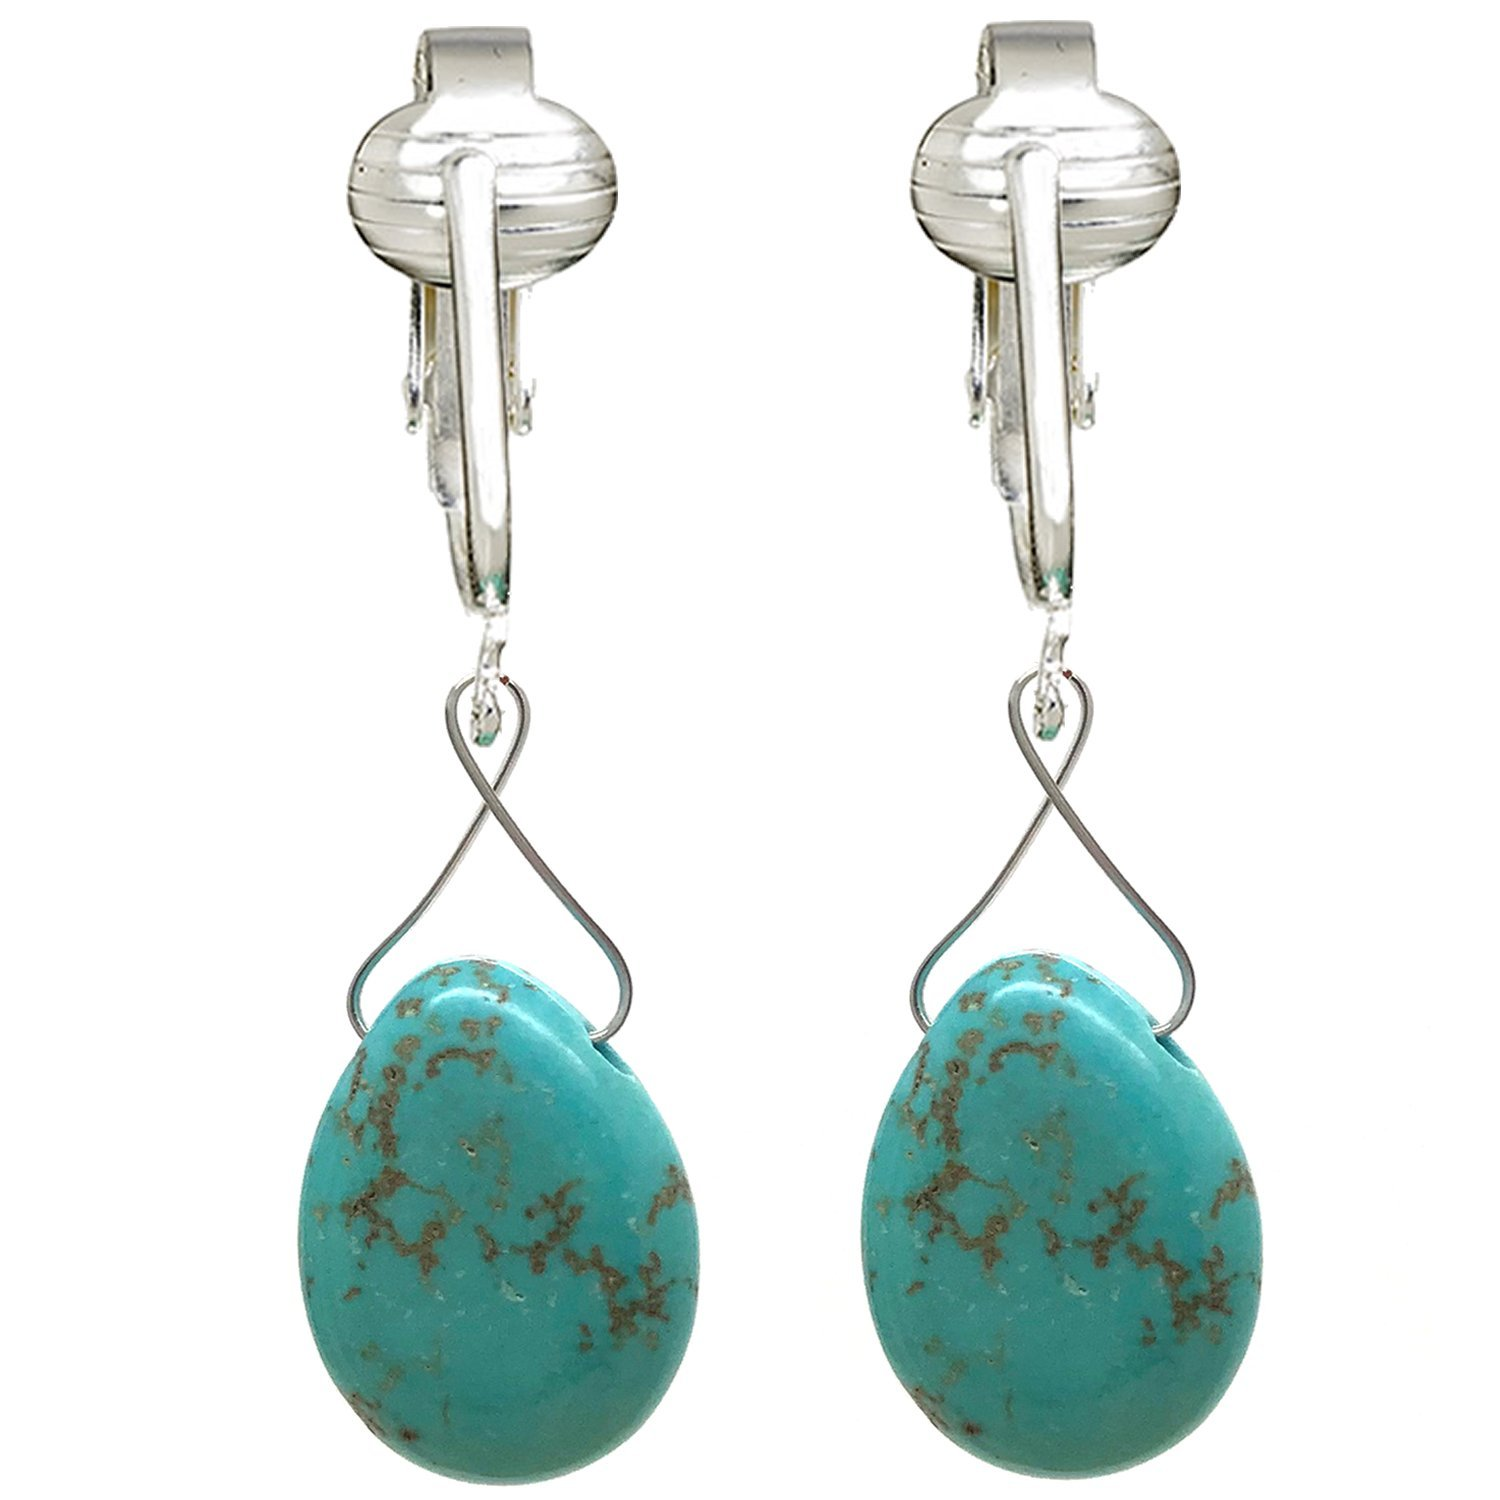 Trendy Turquoise Clip On Earrings for Women, Girls- Teardrop & Cube Clip-on Earrings w Pierced Look, Clip (Turquoise Briolette)